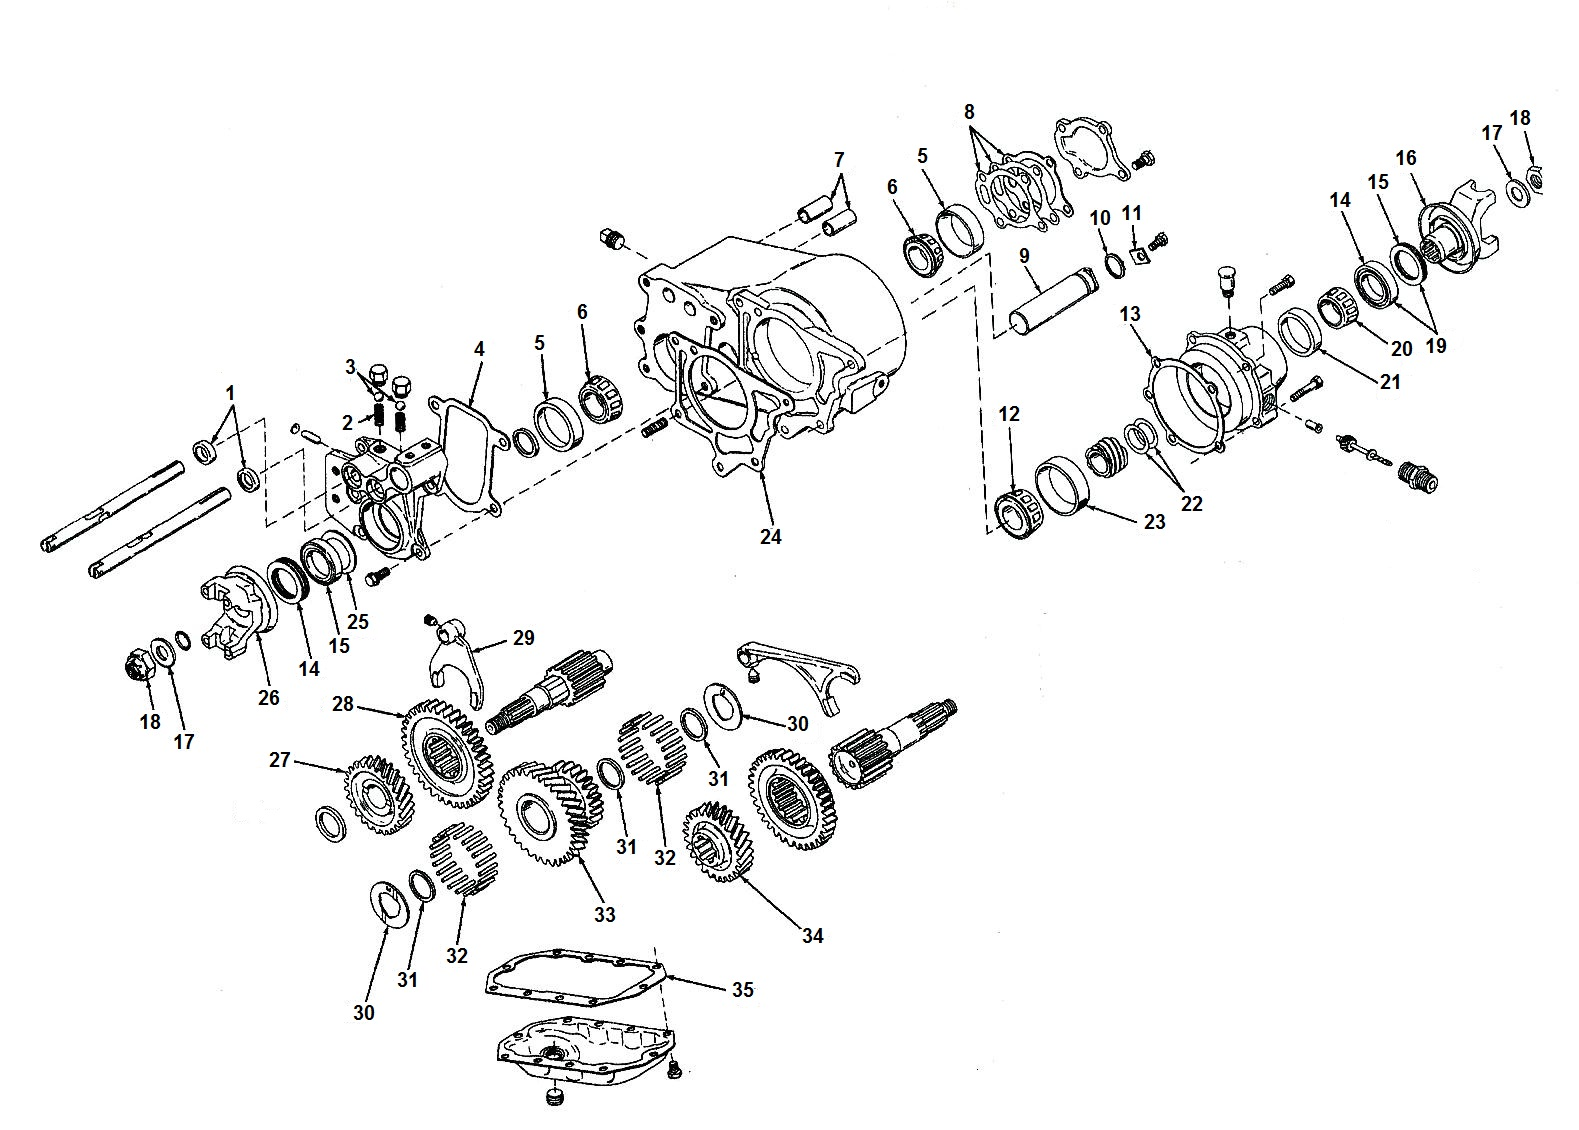 hight resolution of transfer case dana spicer 20 exploded view diagram jeep dana 20 transfer case parts